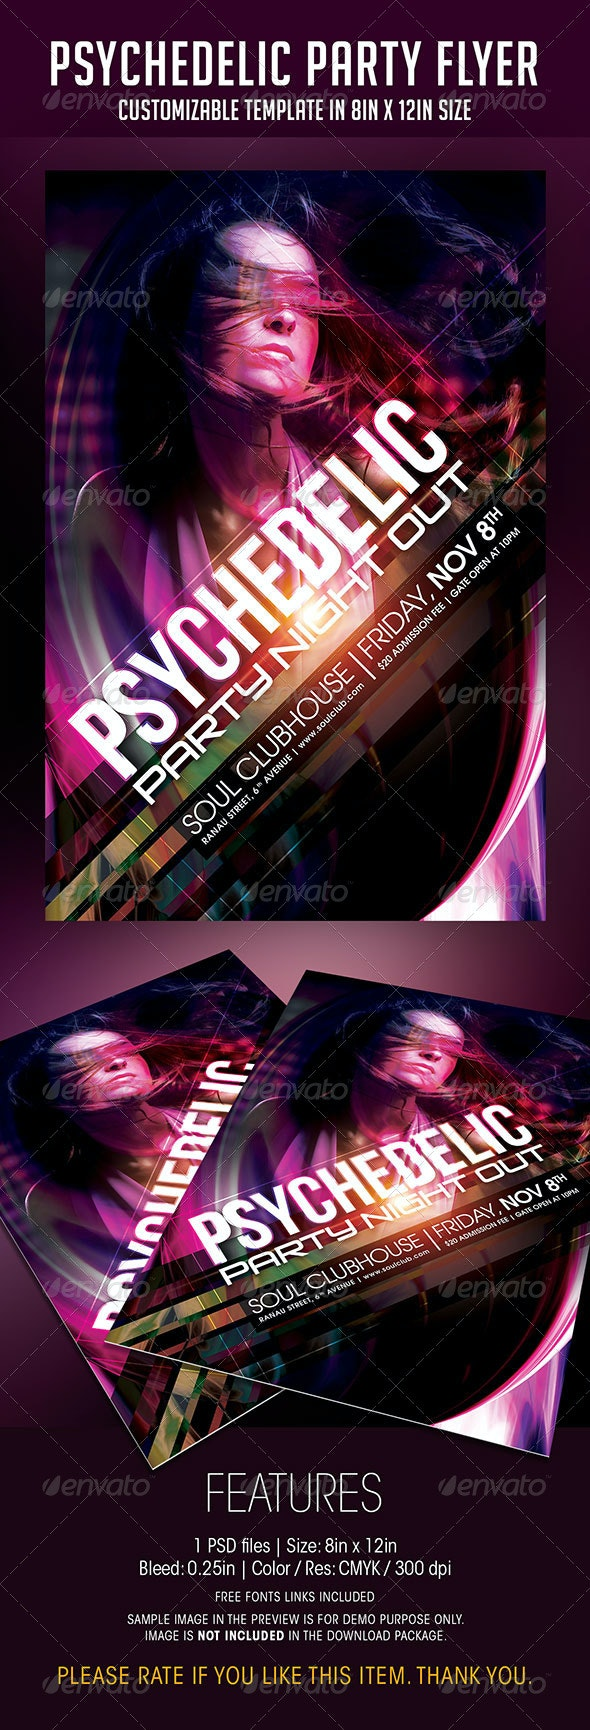 Psychedelic Party Flyer - Clubs & Parties Events